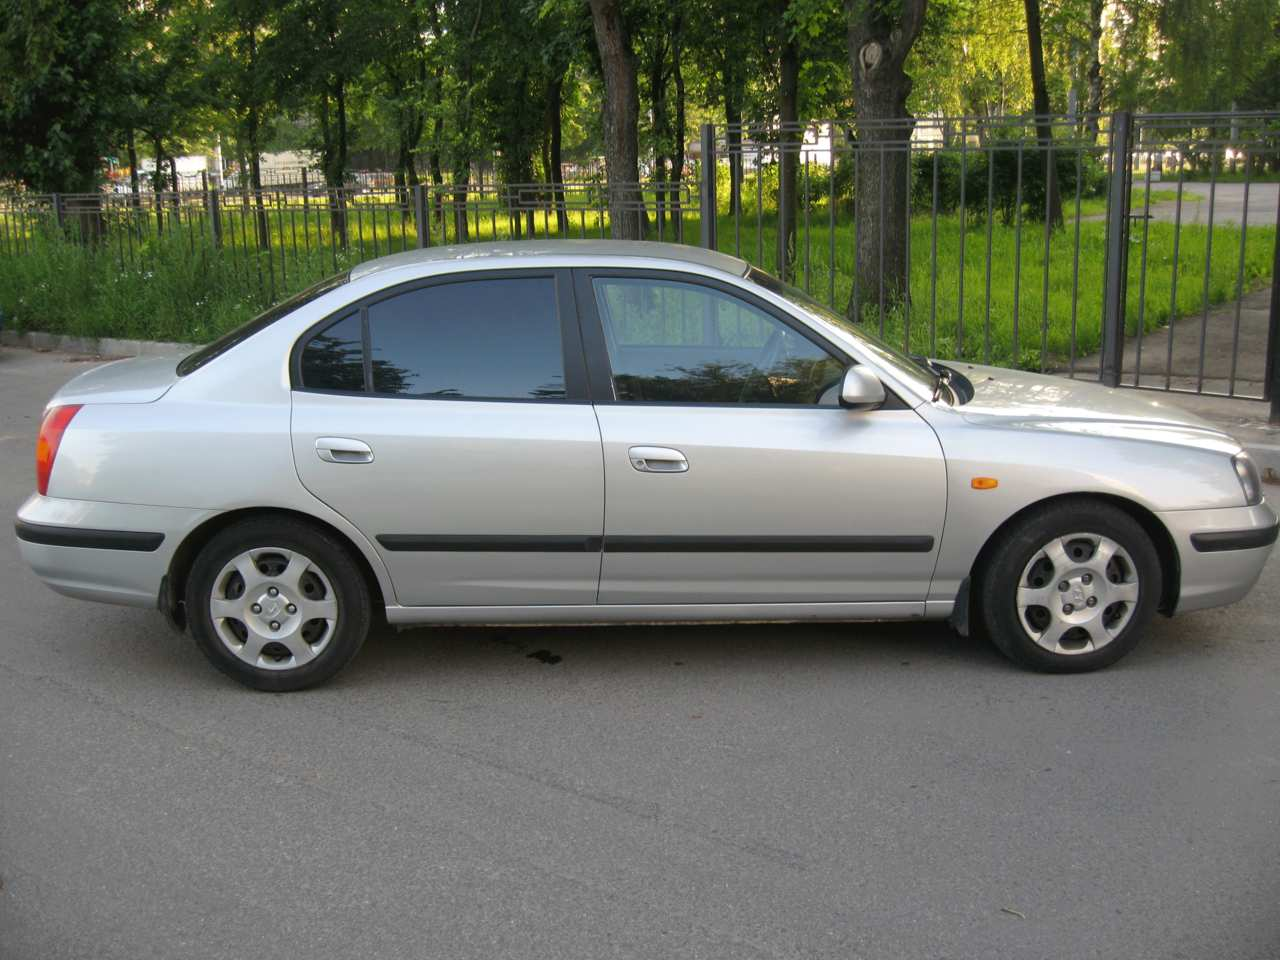 Hyundai Elantra 1.6 2002 photo - 7